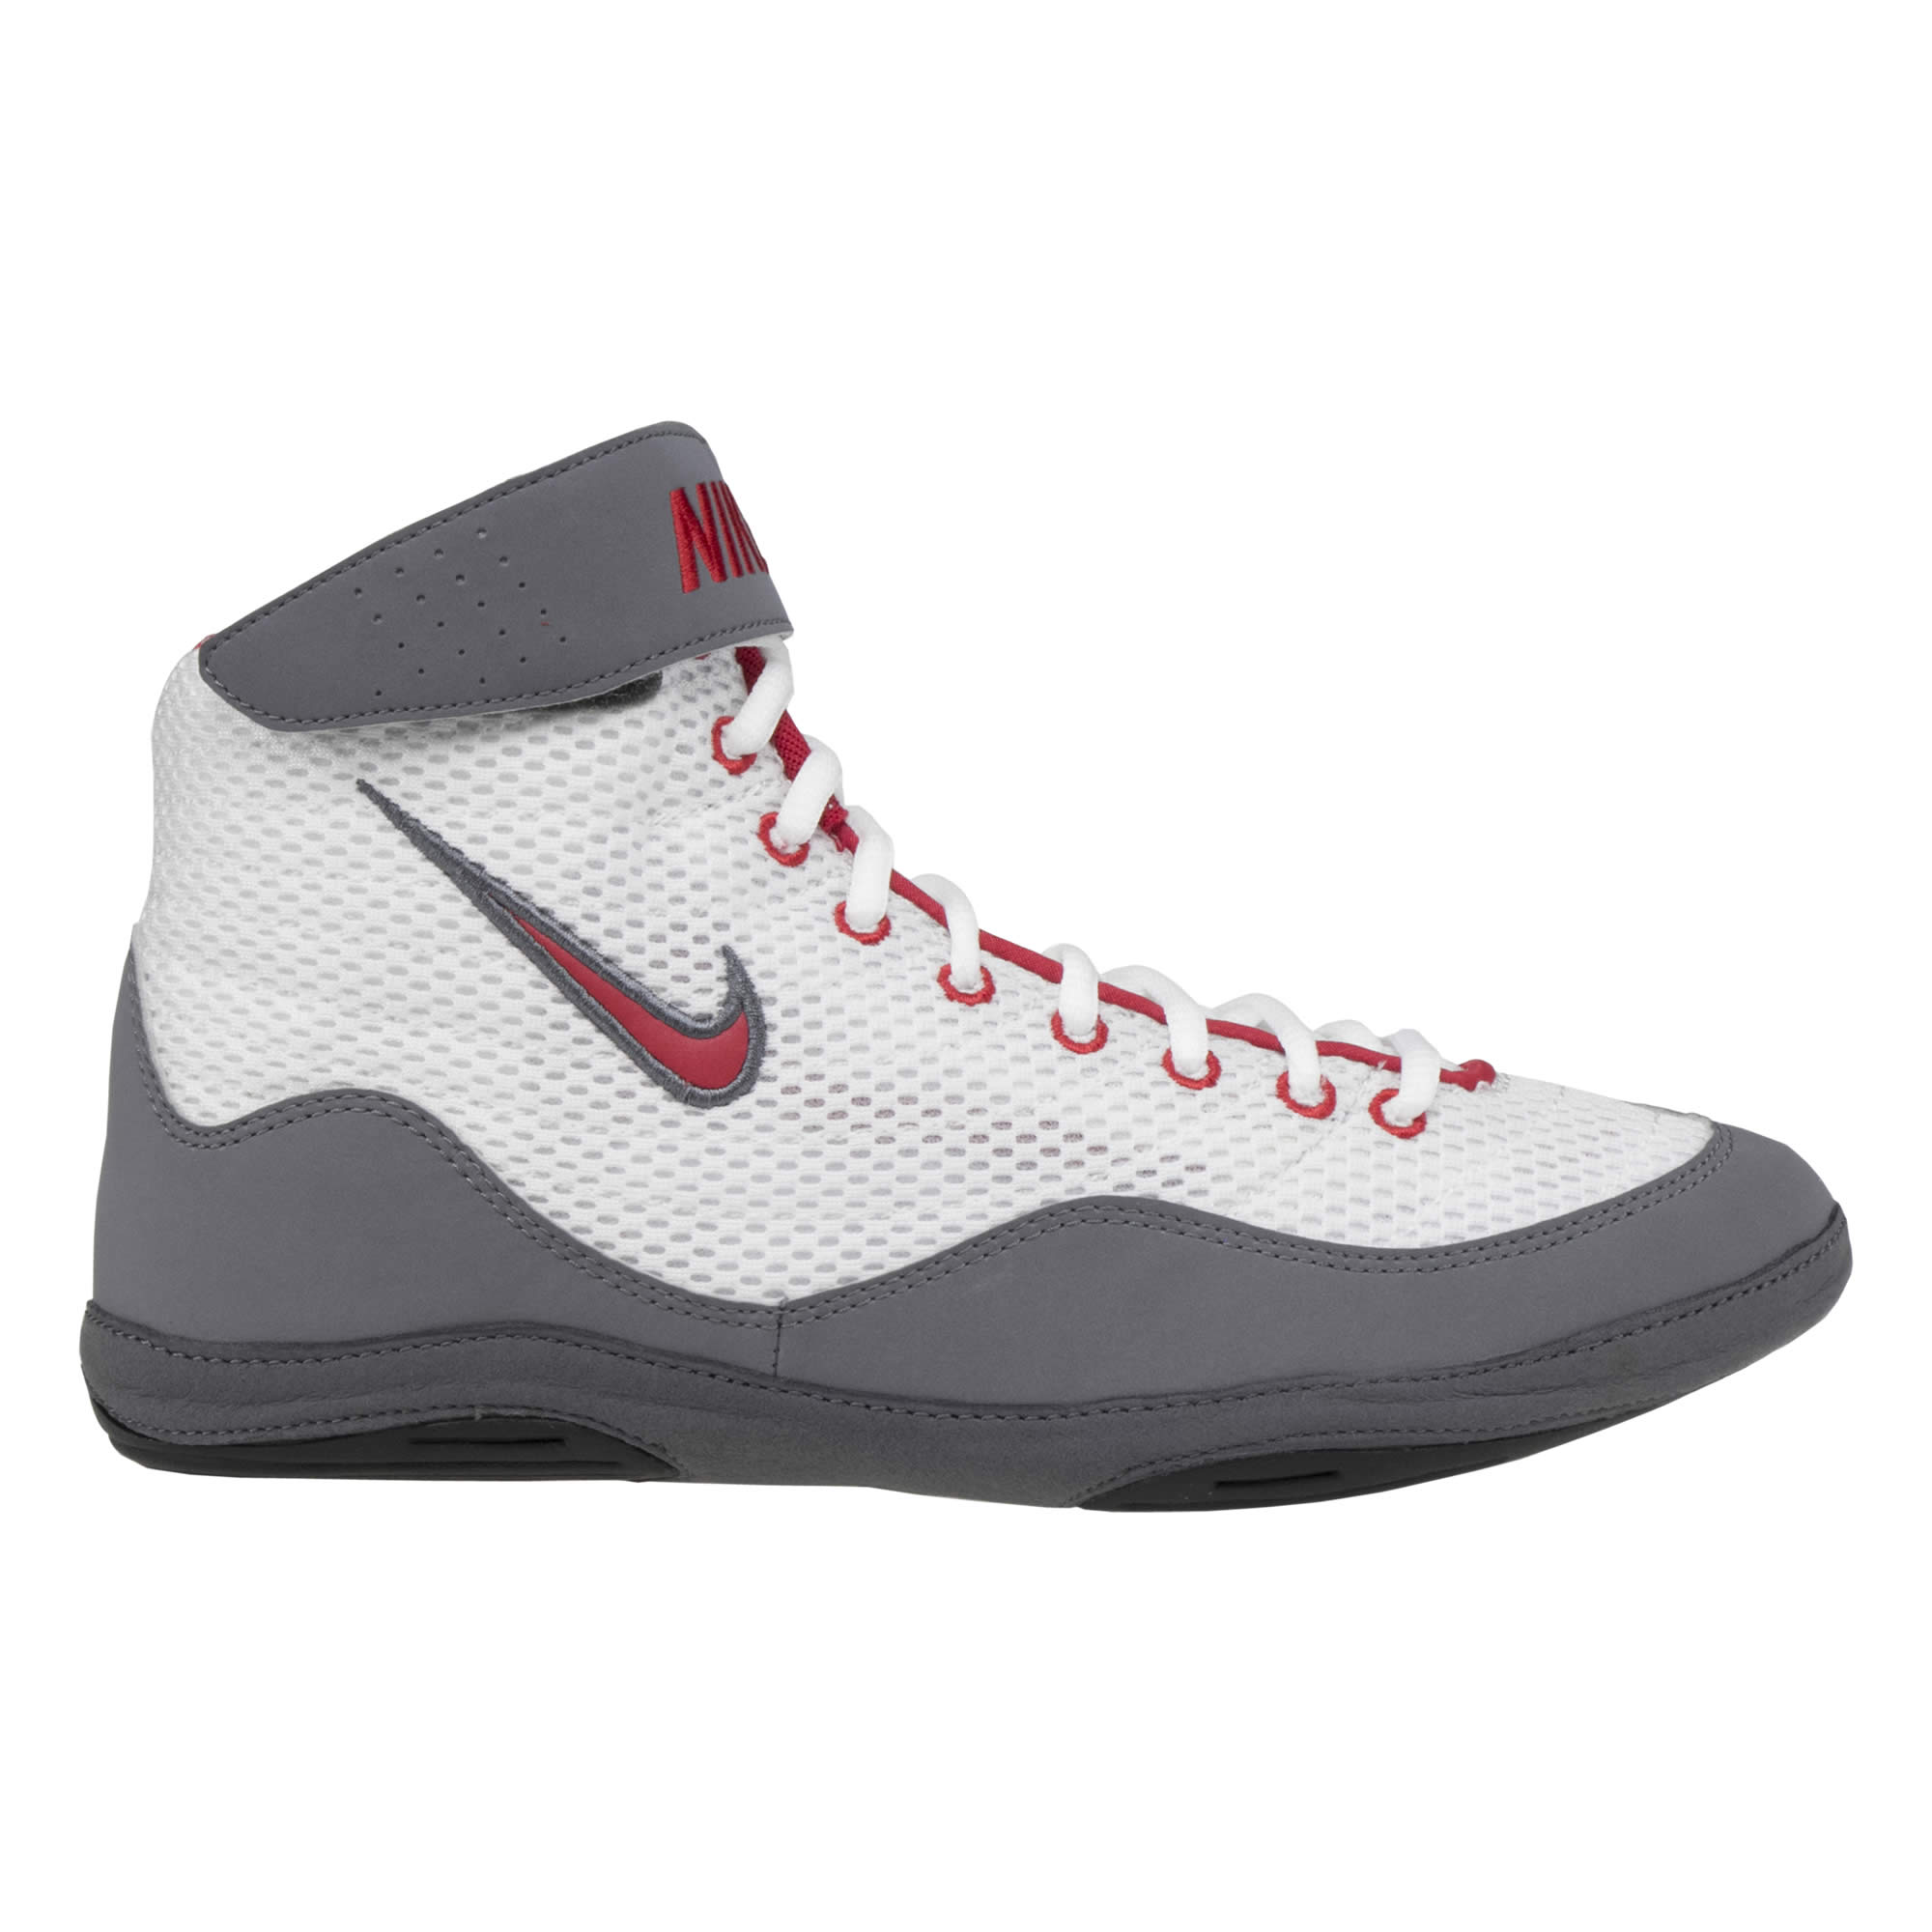 Mens Nike Inflict Wrestling Shoes Male Models Picture